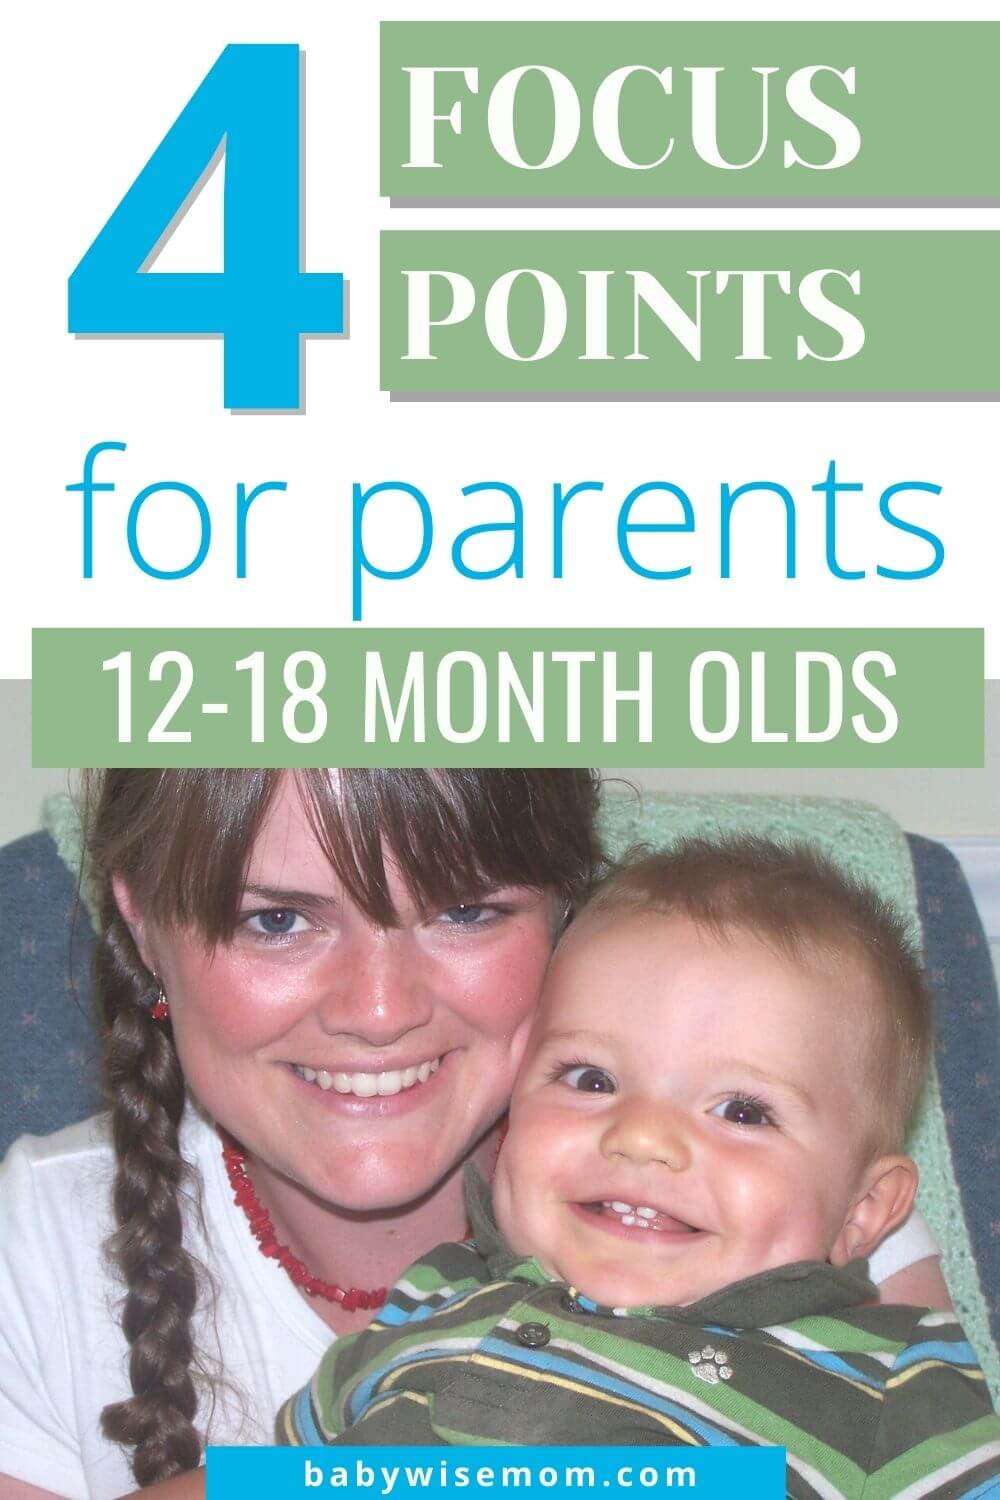 4 focus points for parents of 12-18 month olds